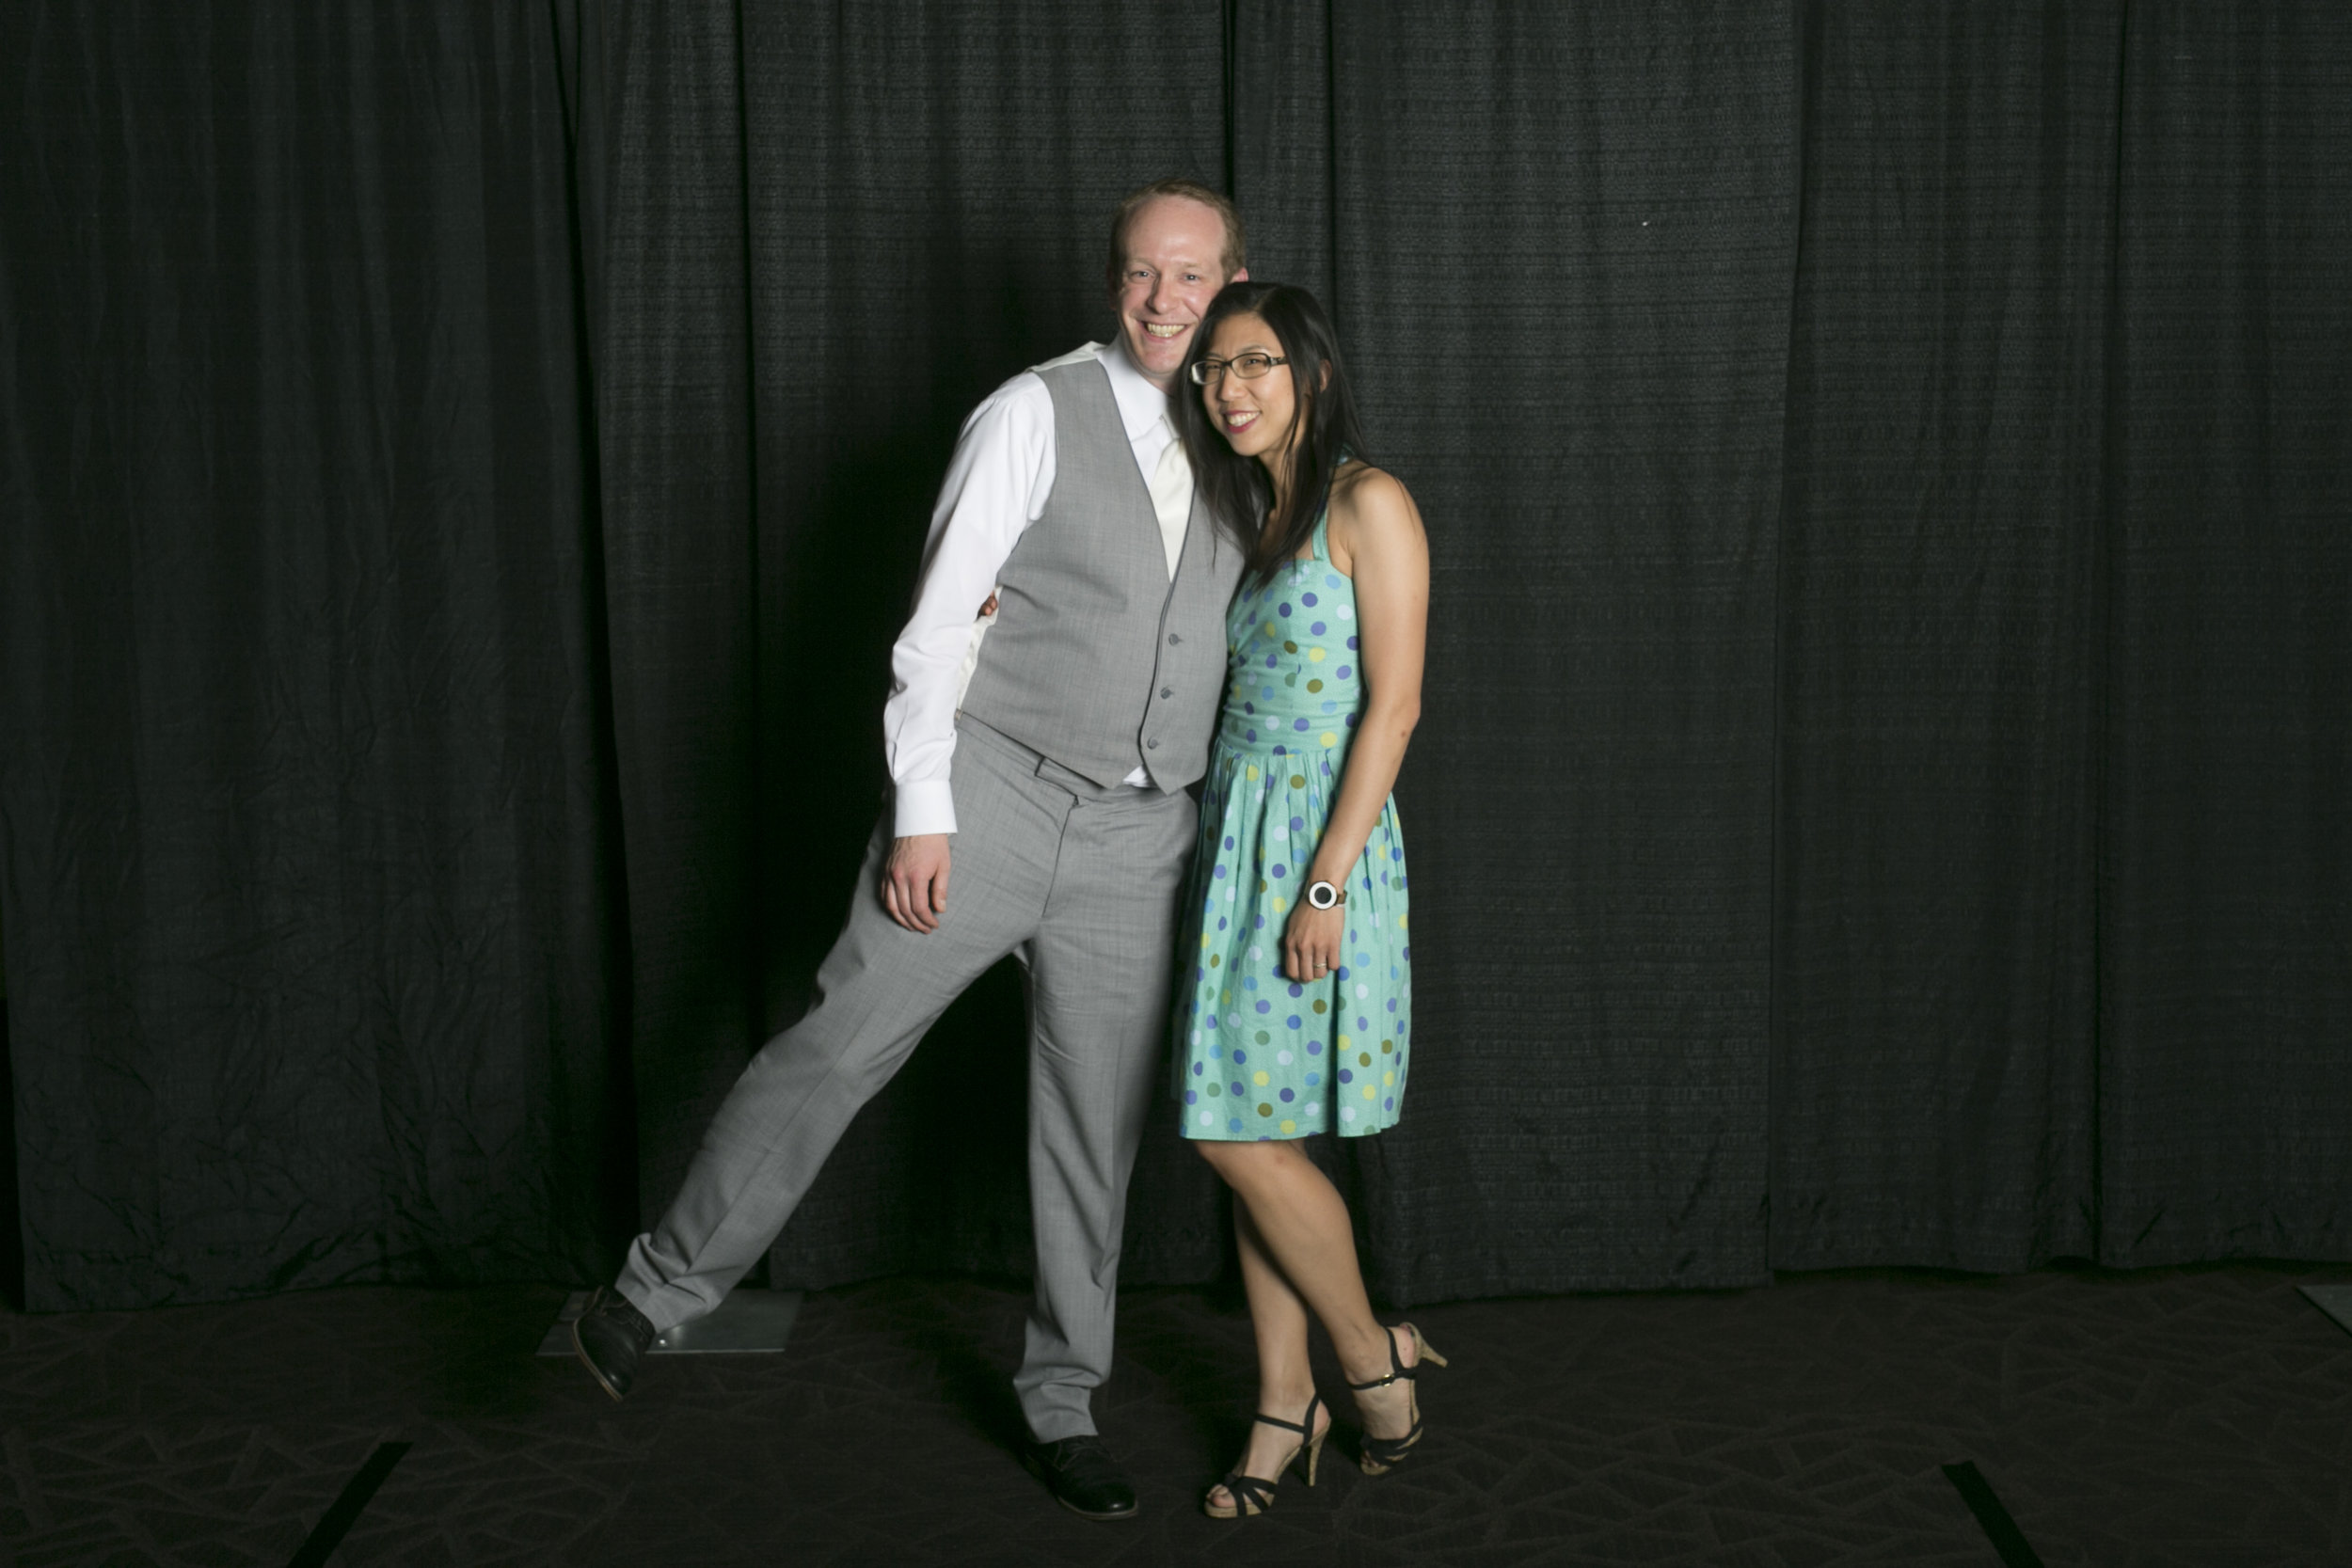 wedding photo booth-6.jpg